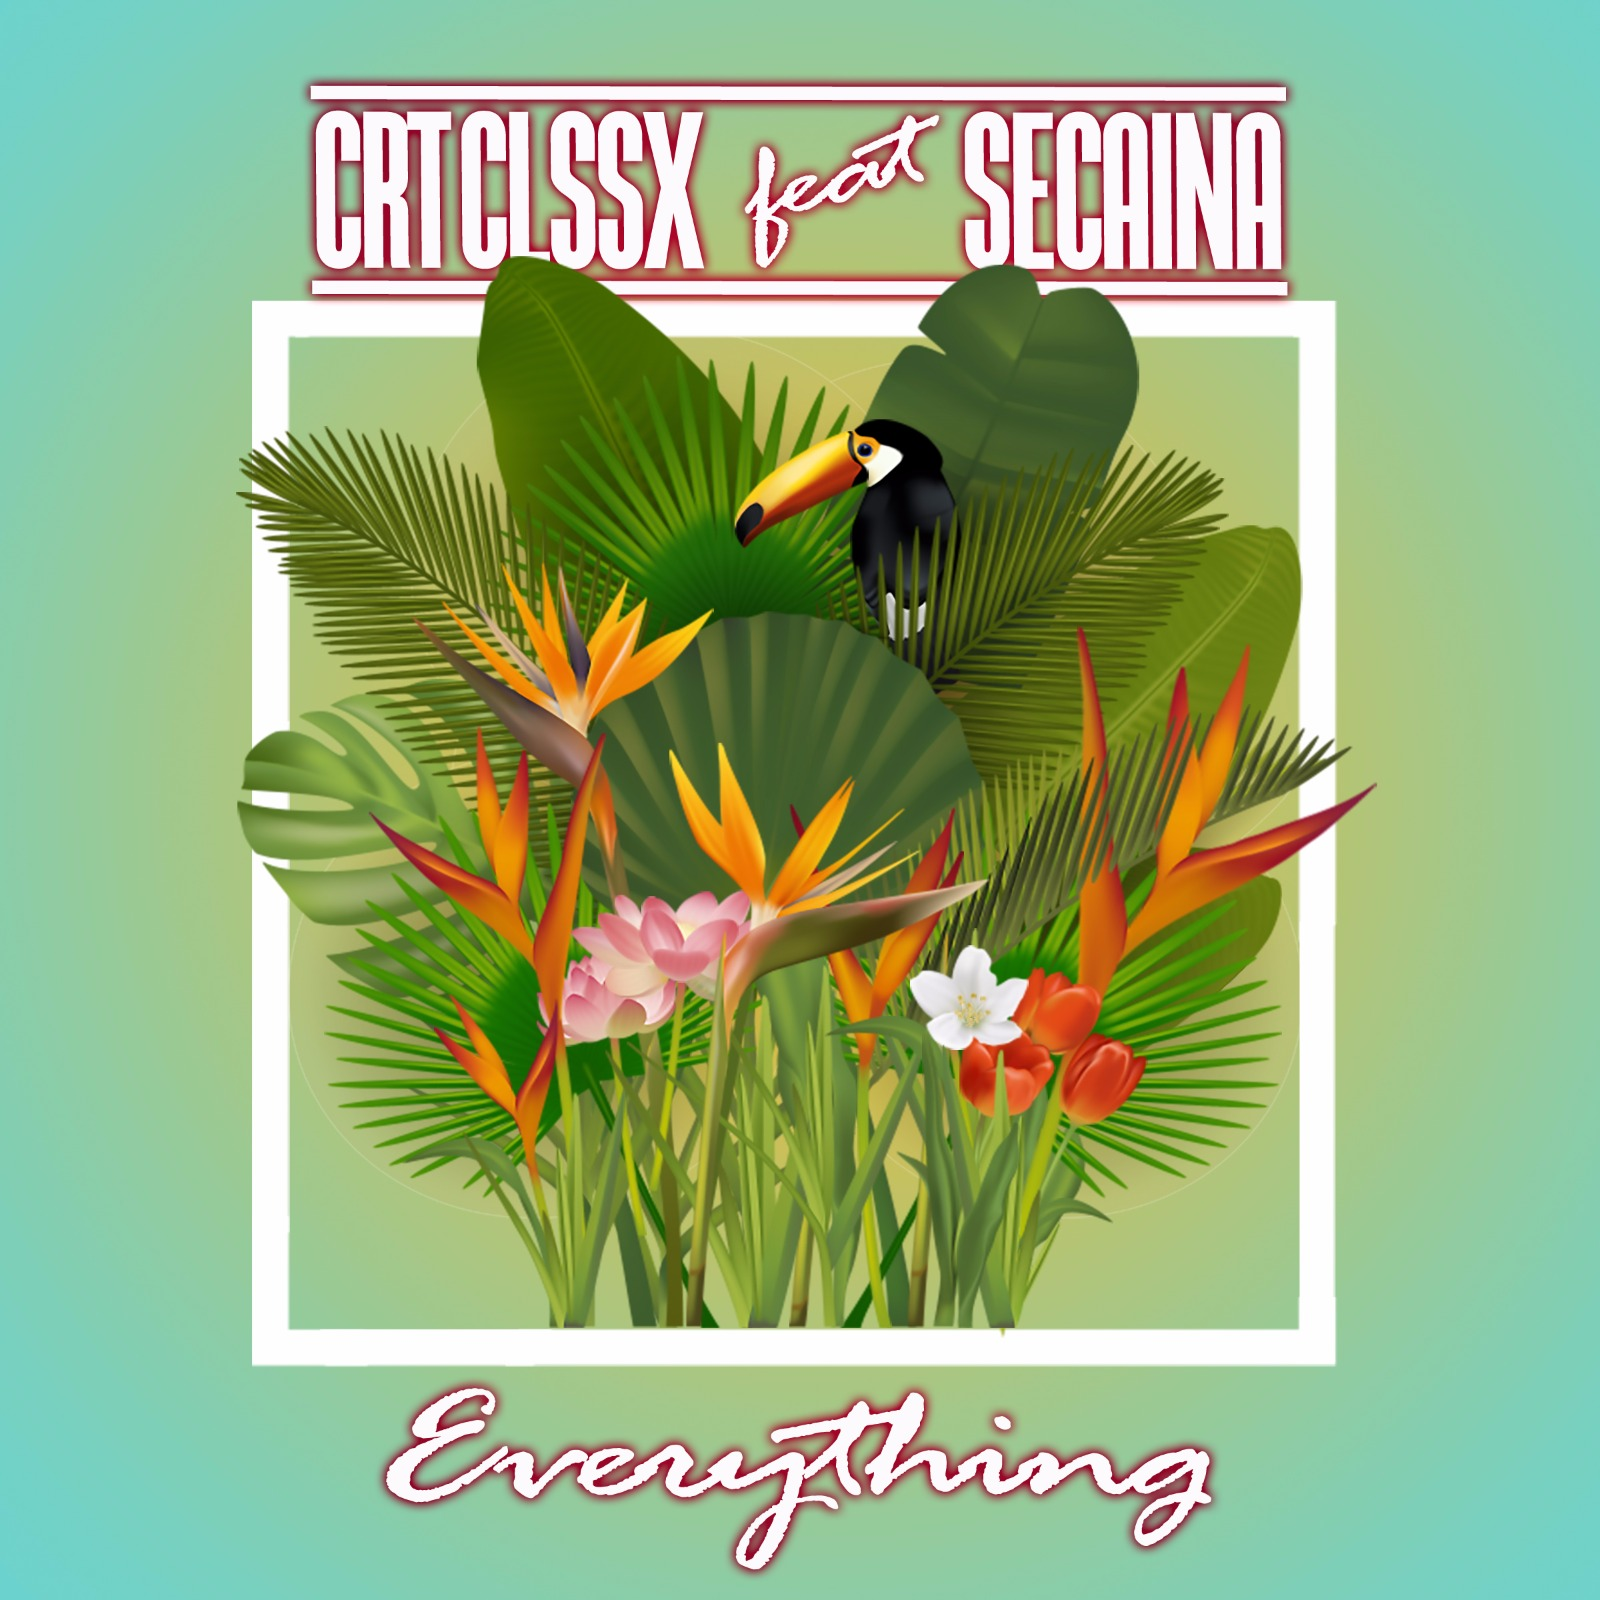 CRT-CLSSX-EVERTHING-FEAT-SECAINA-